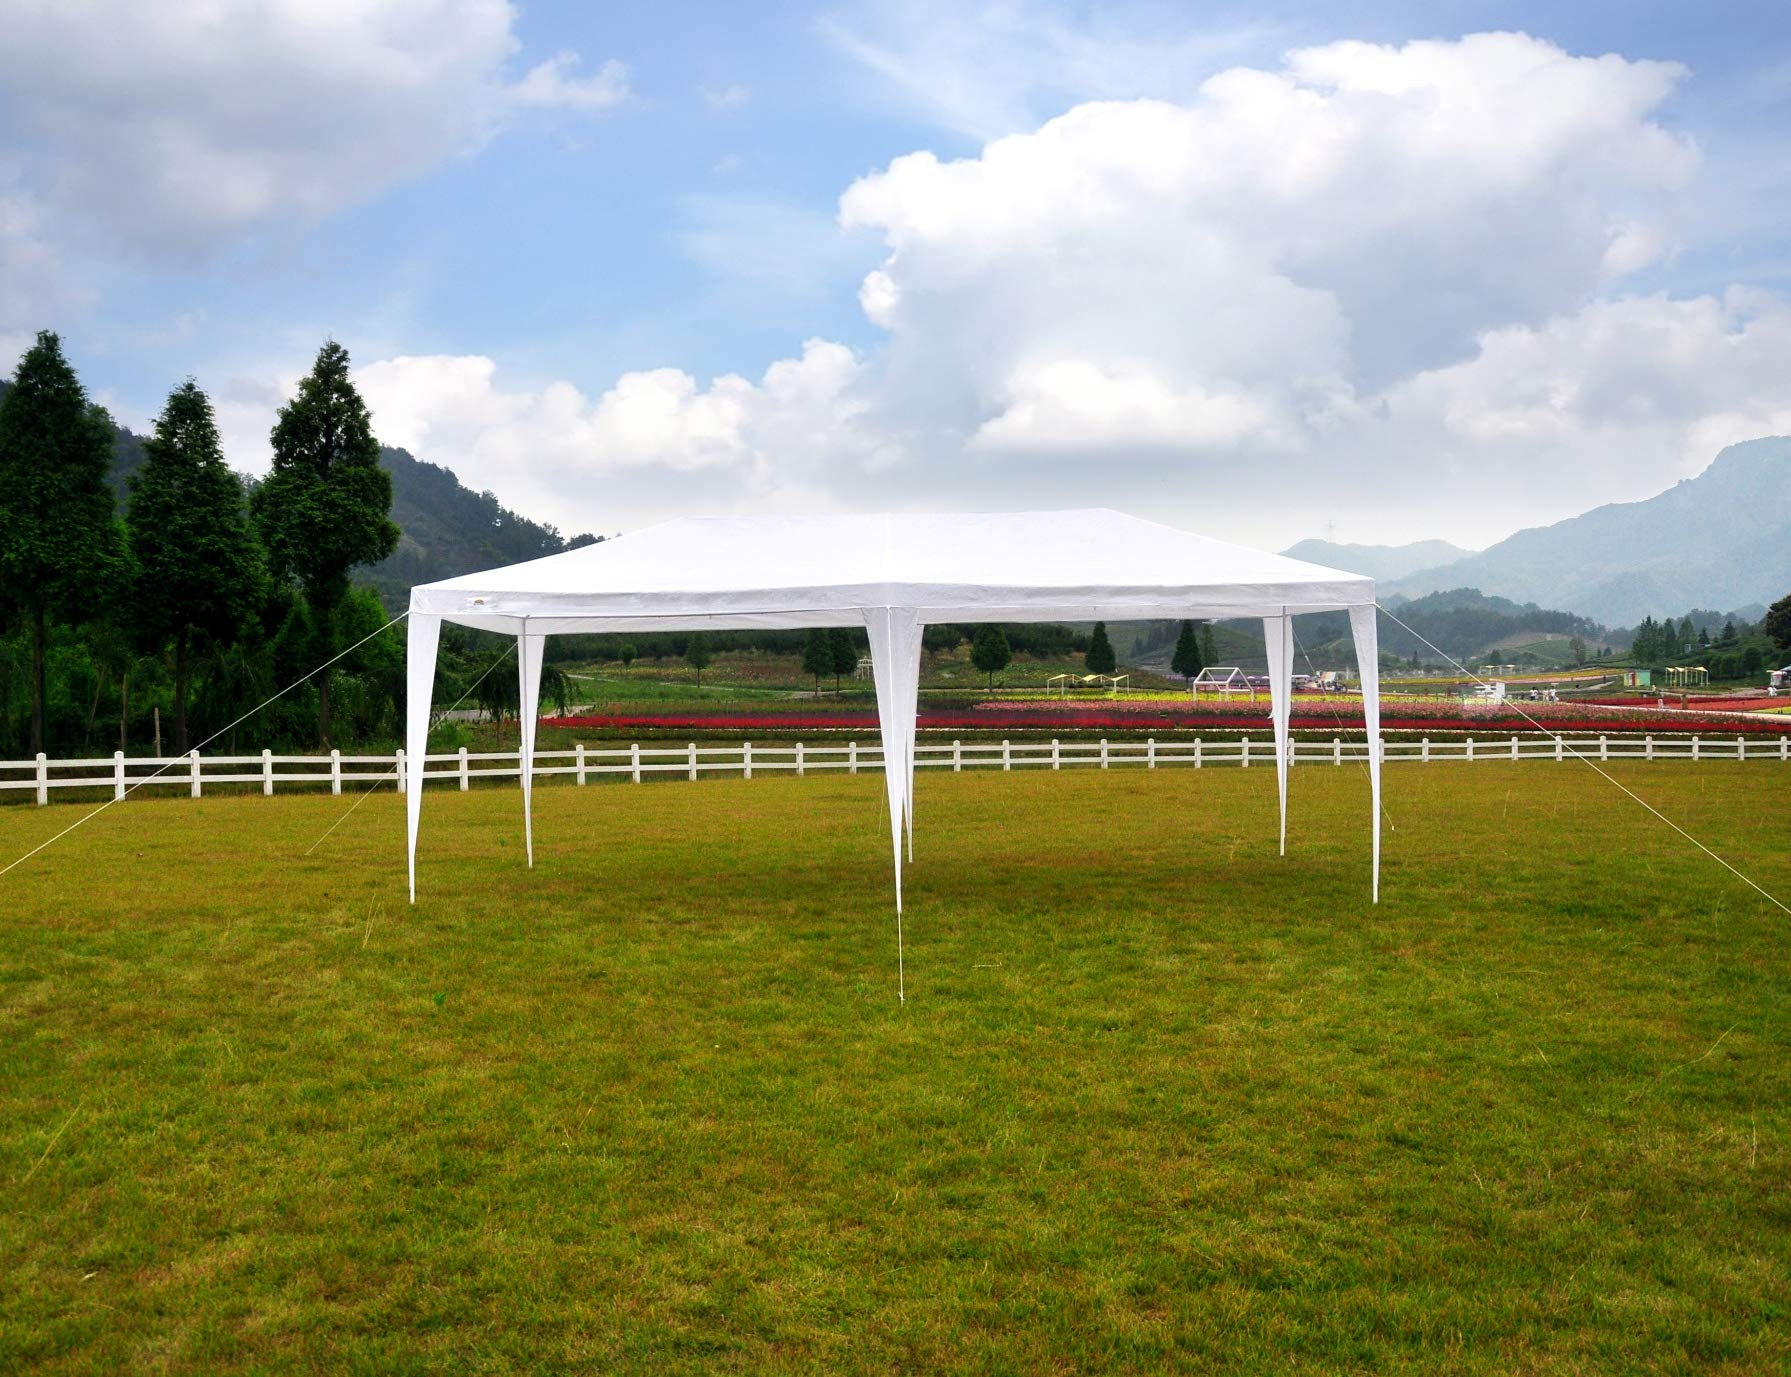 GOJOOASIS 10x20 Outdoor Gazebo Wedding Party Tent w/ 6 Removable Walls by GOJOOASIS (Image #4)